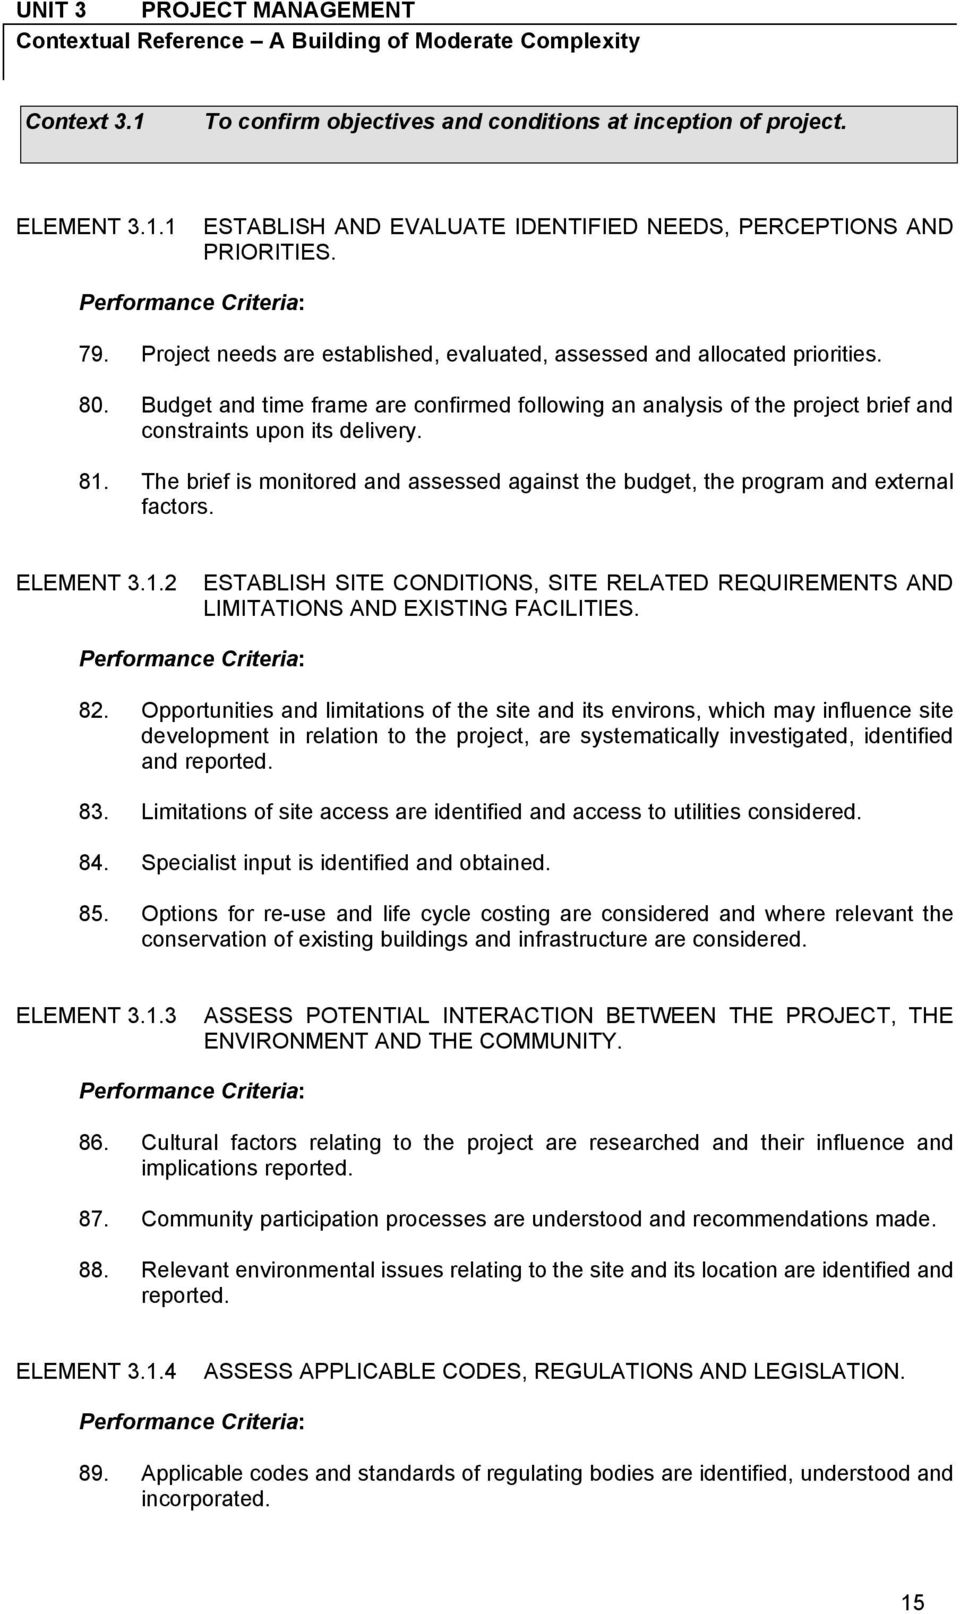 81. The brief is monitored and assessed against the budget, the program and external factors. ELEMENT 3.1.2 ESTABLISH SITE CONDITIONS, SITE RELATED REQUIREMENTS AND LIMITATIONS AND EXISTING FACILITIES.